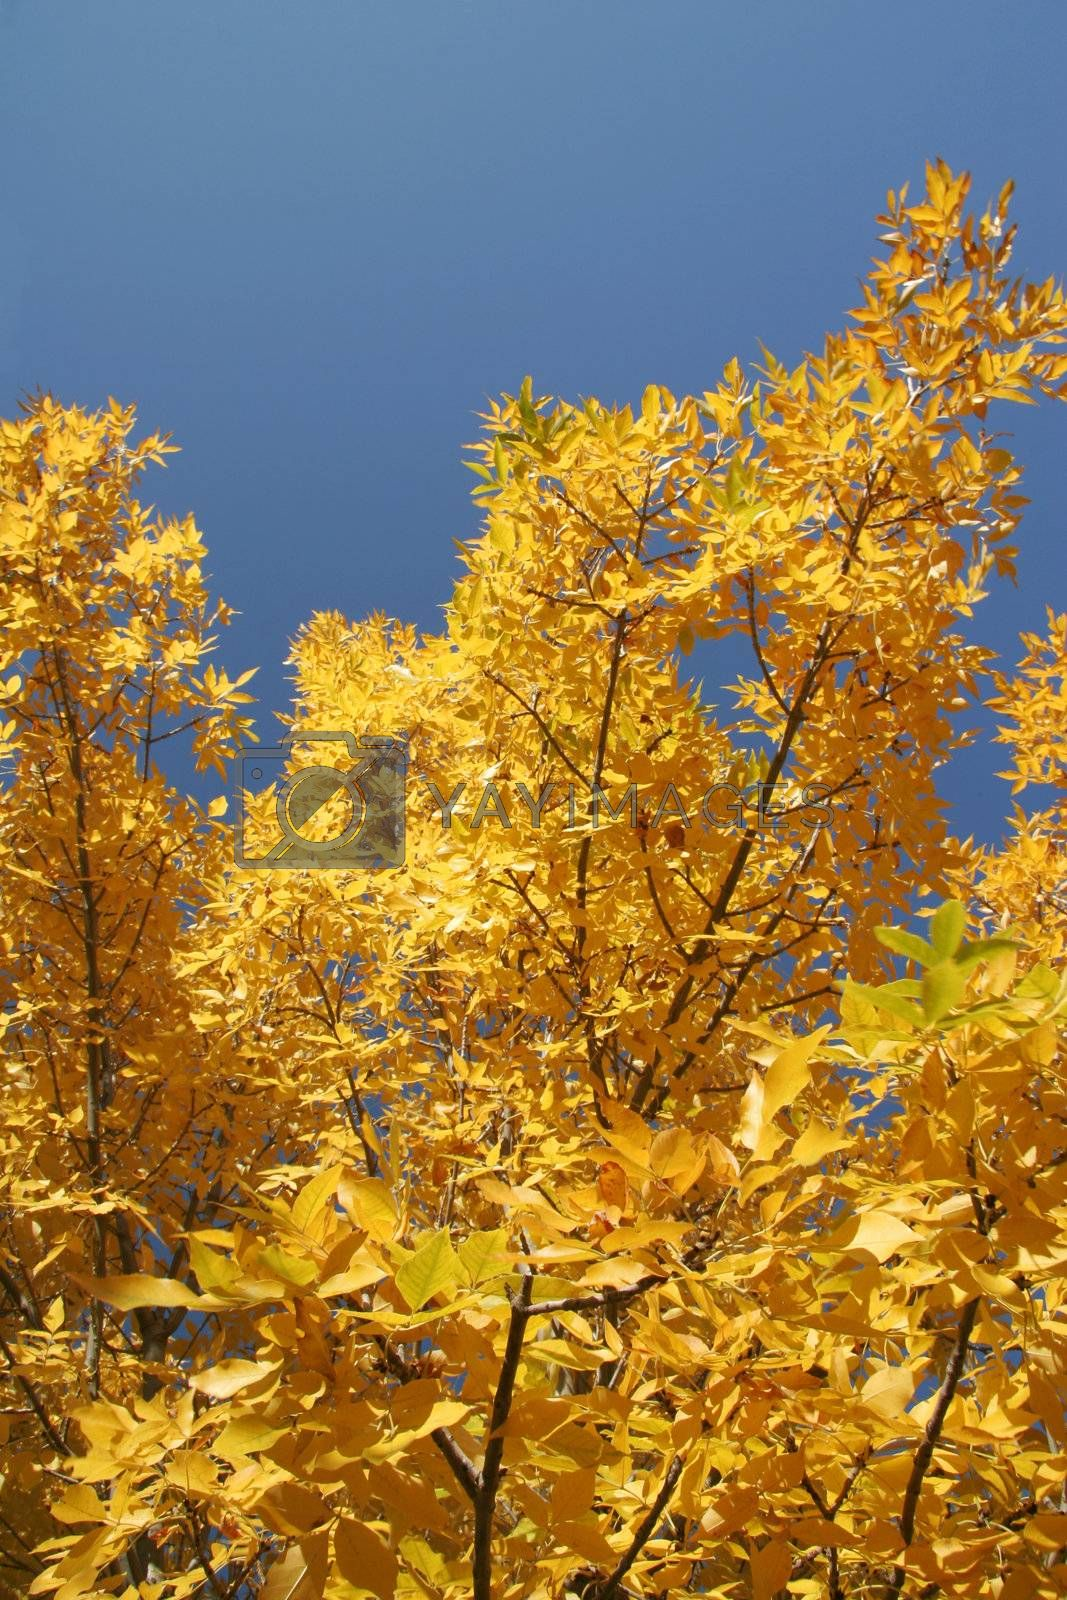 Colour of the tree in autumn